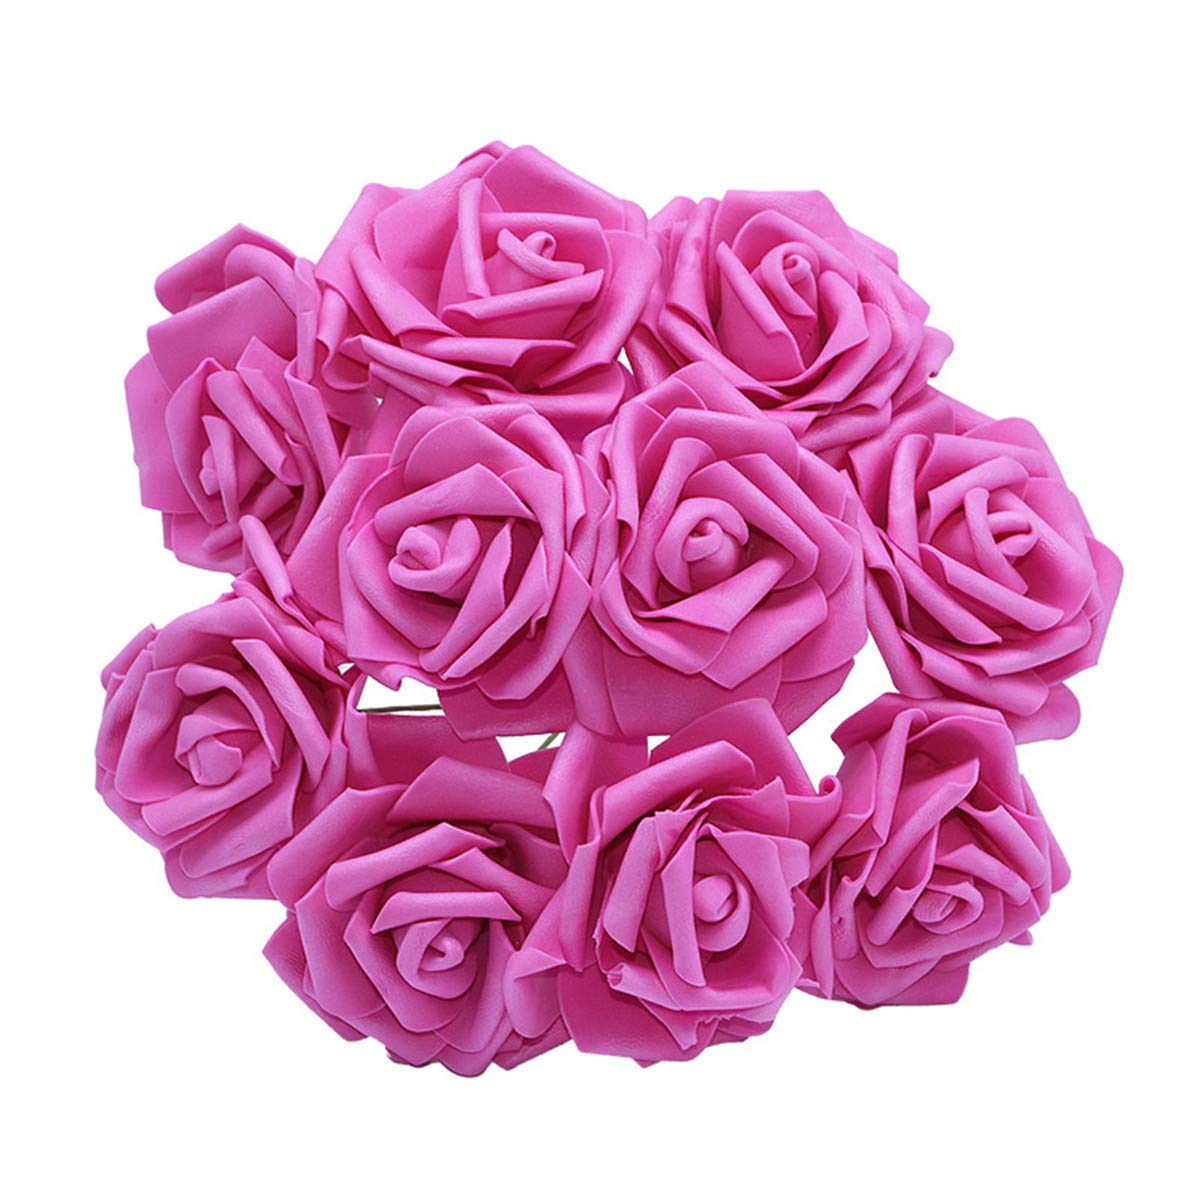 YONGSNOW Artificial Rose Flower 30Pcs PE Foam Roses Bulk with Stem Real Touch 3D Rose for DIY Wedding Bouquets Centerpieces Bridal Shower Party Home Decoration (Rose red)